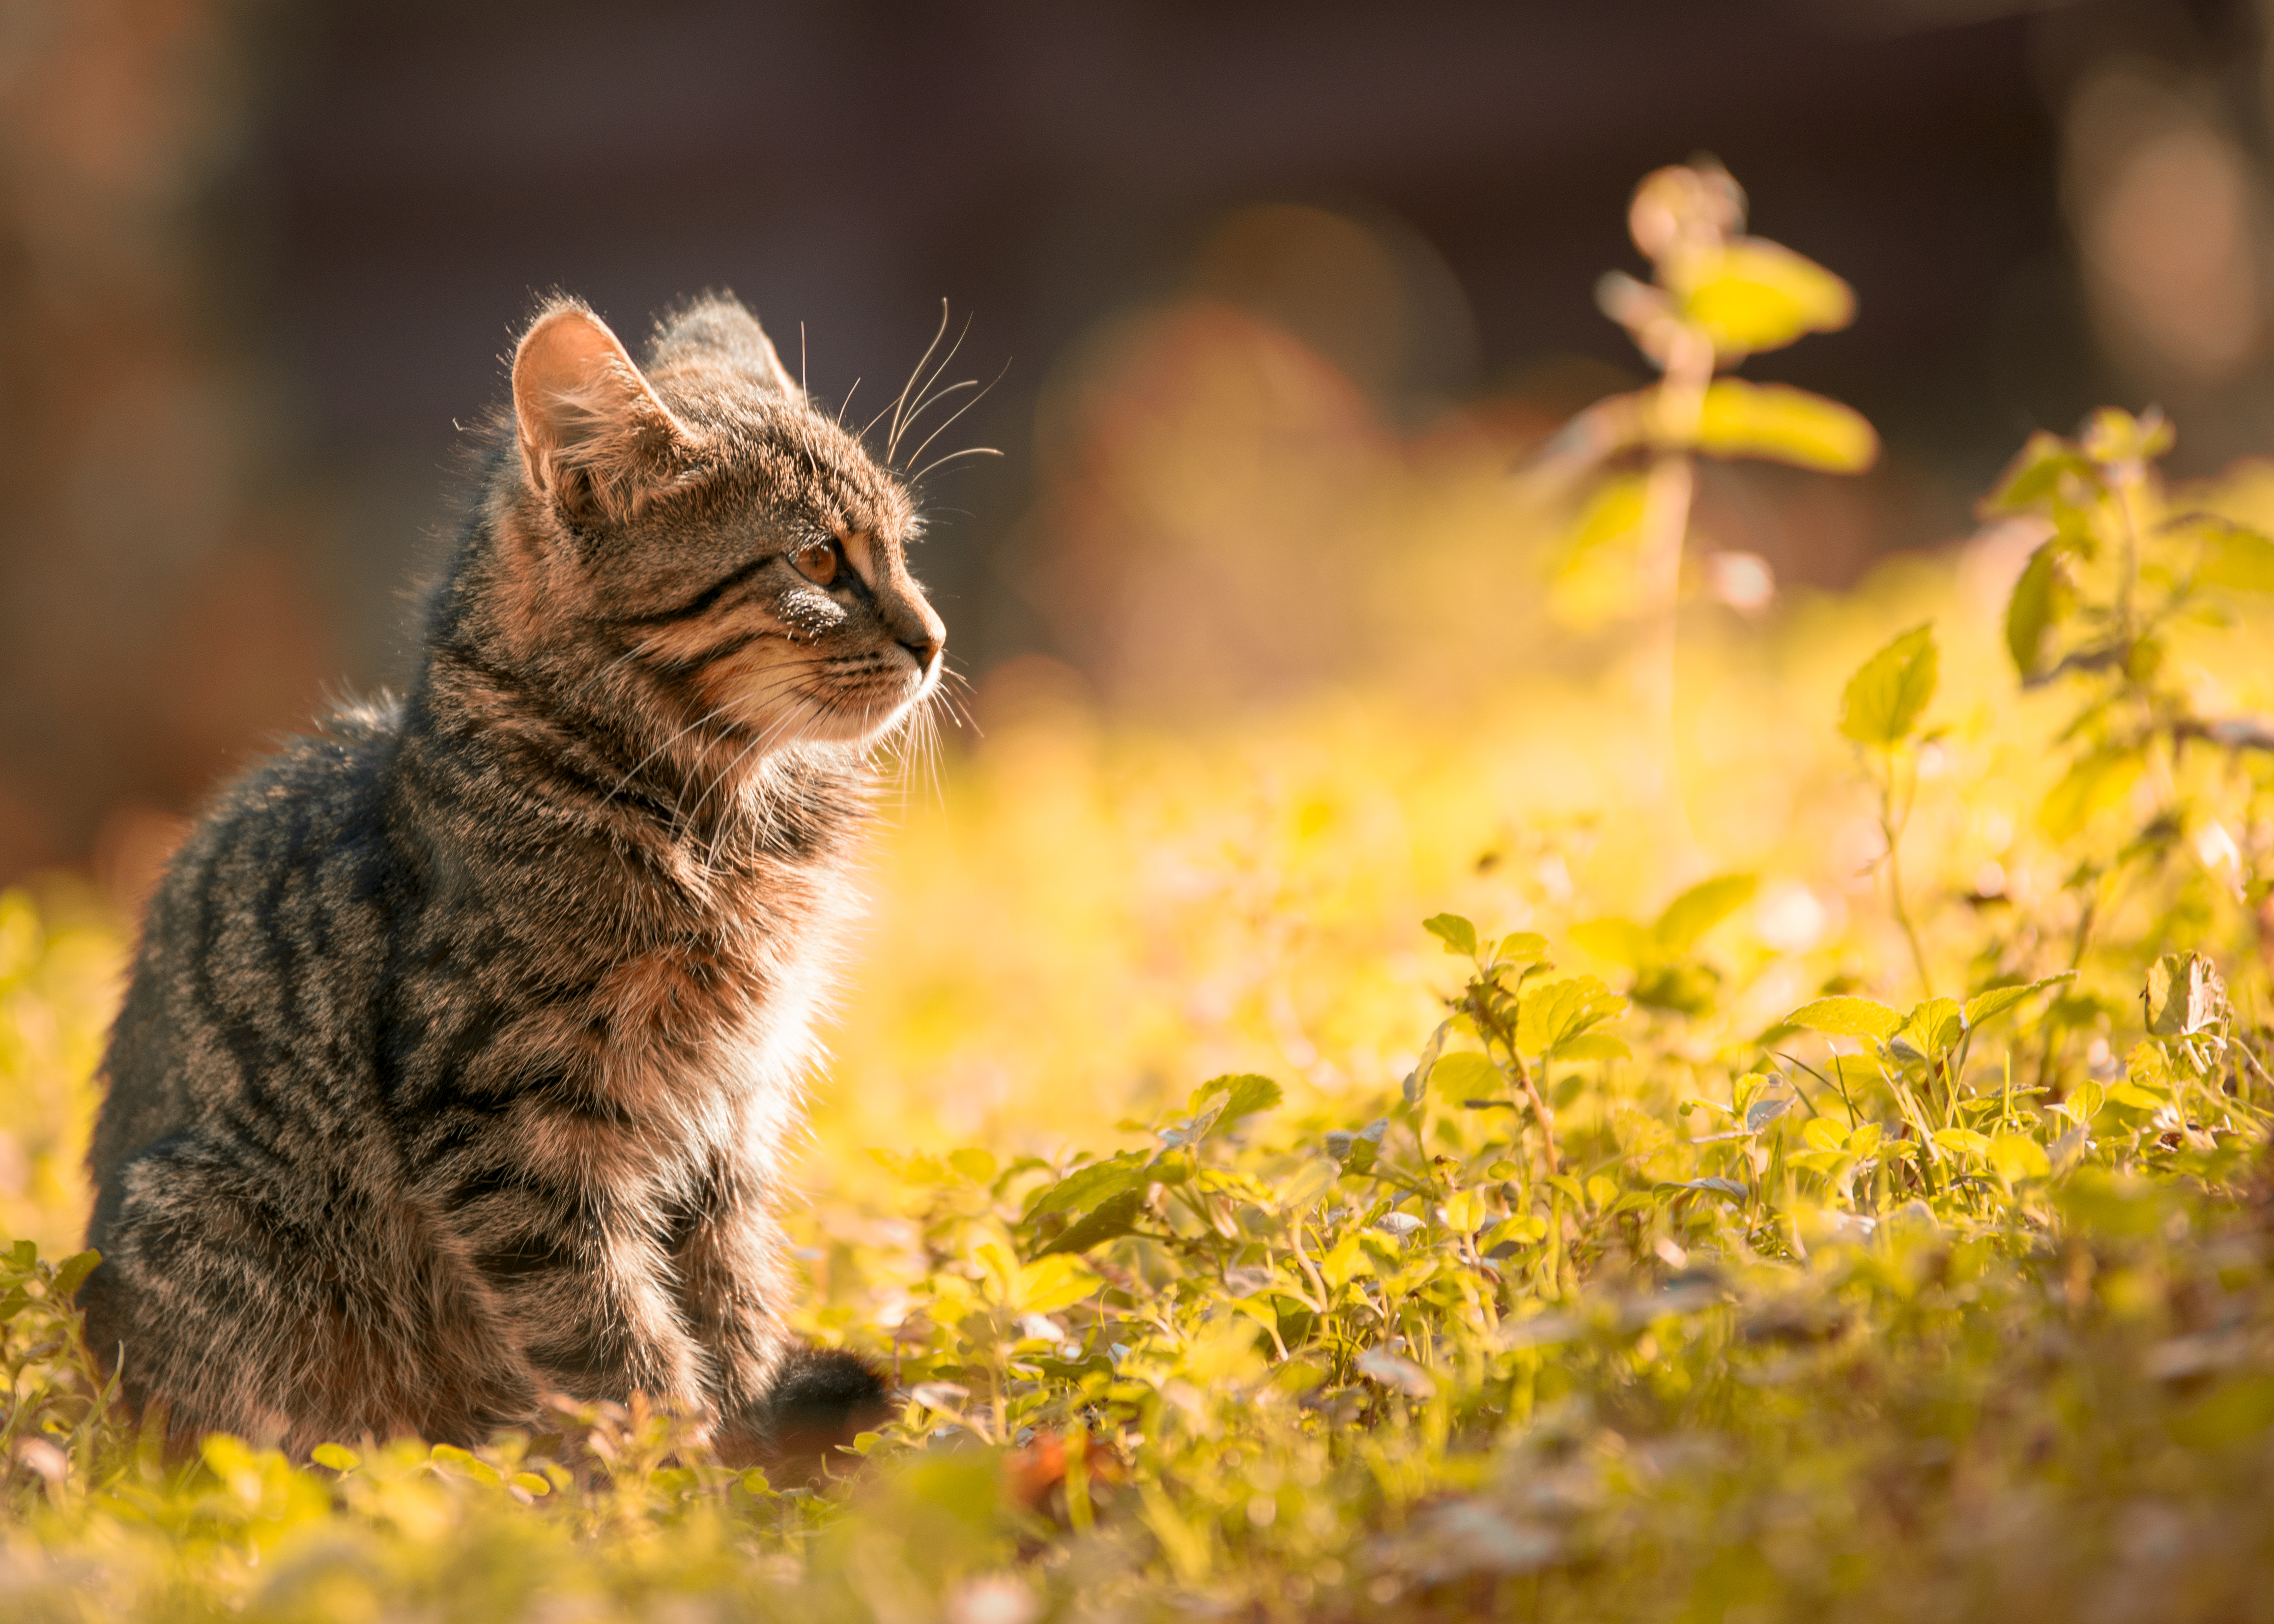 Cute Animal Wallpapers Free Tabby Kitten Sitting On The Grass 183 Free Stock Photo